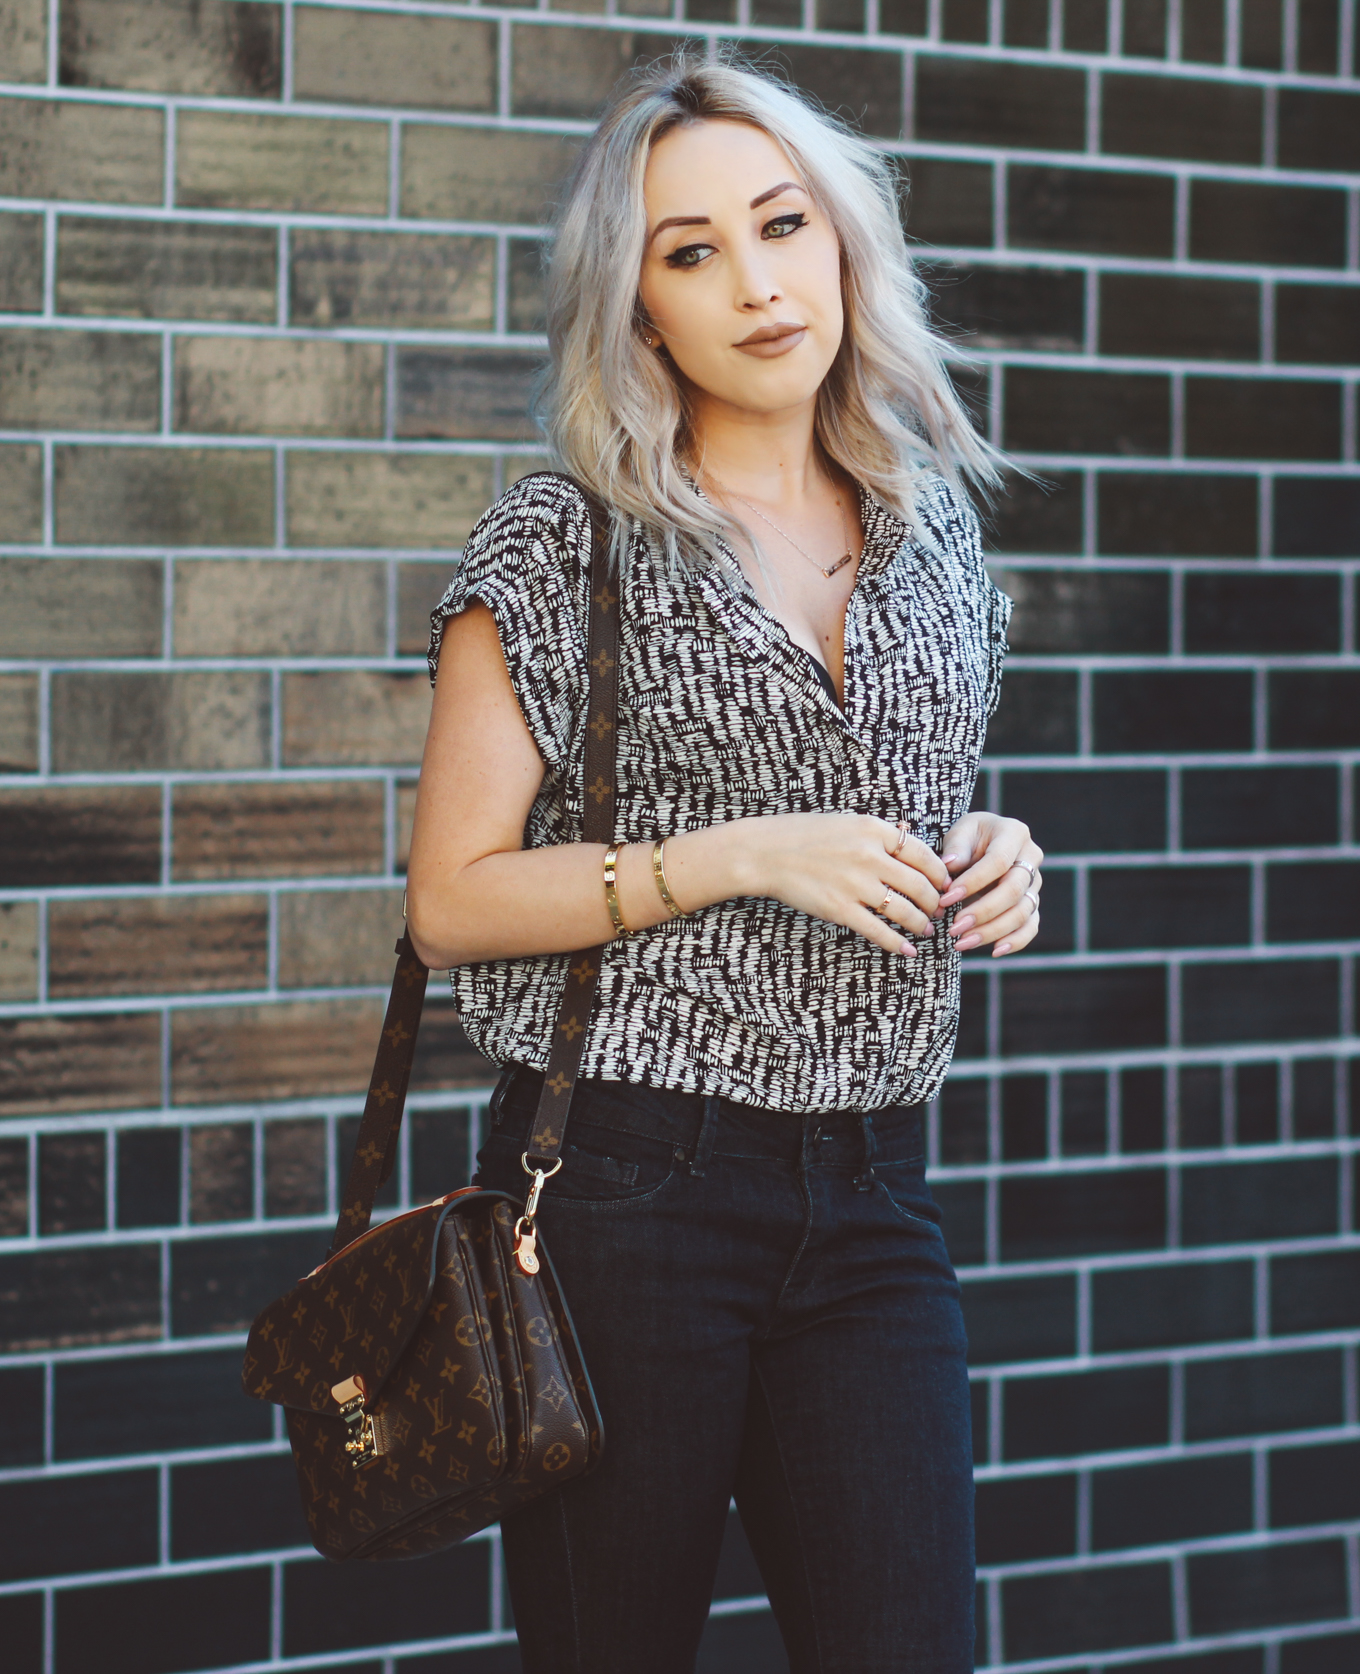 Blondie in the City | Street Casual